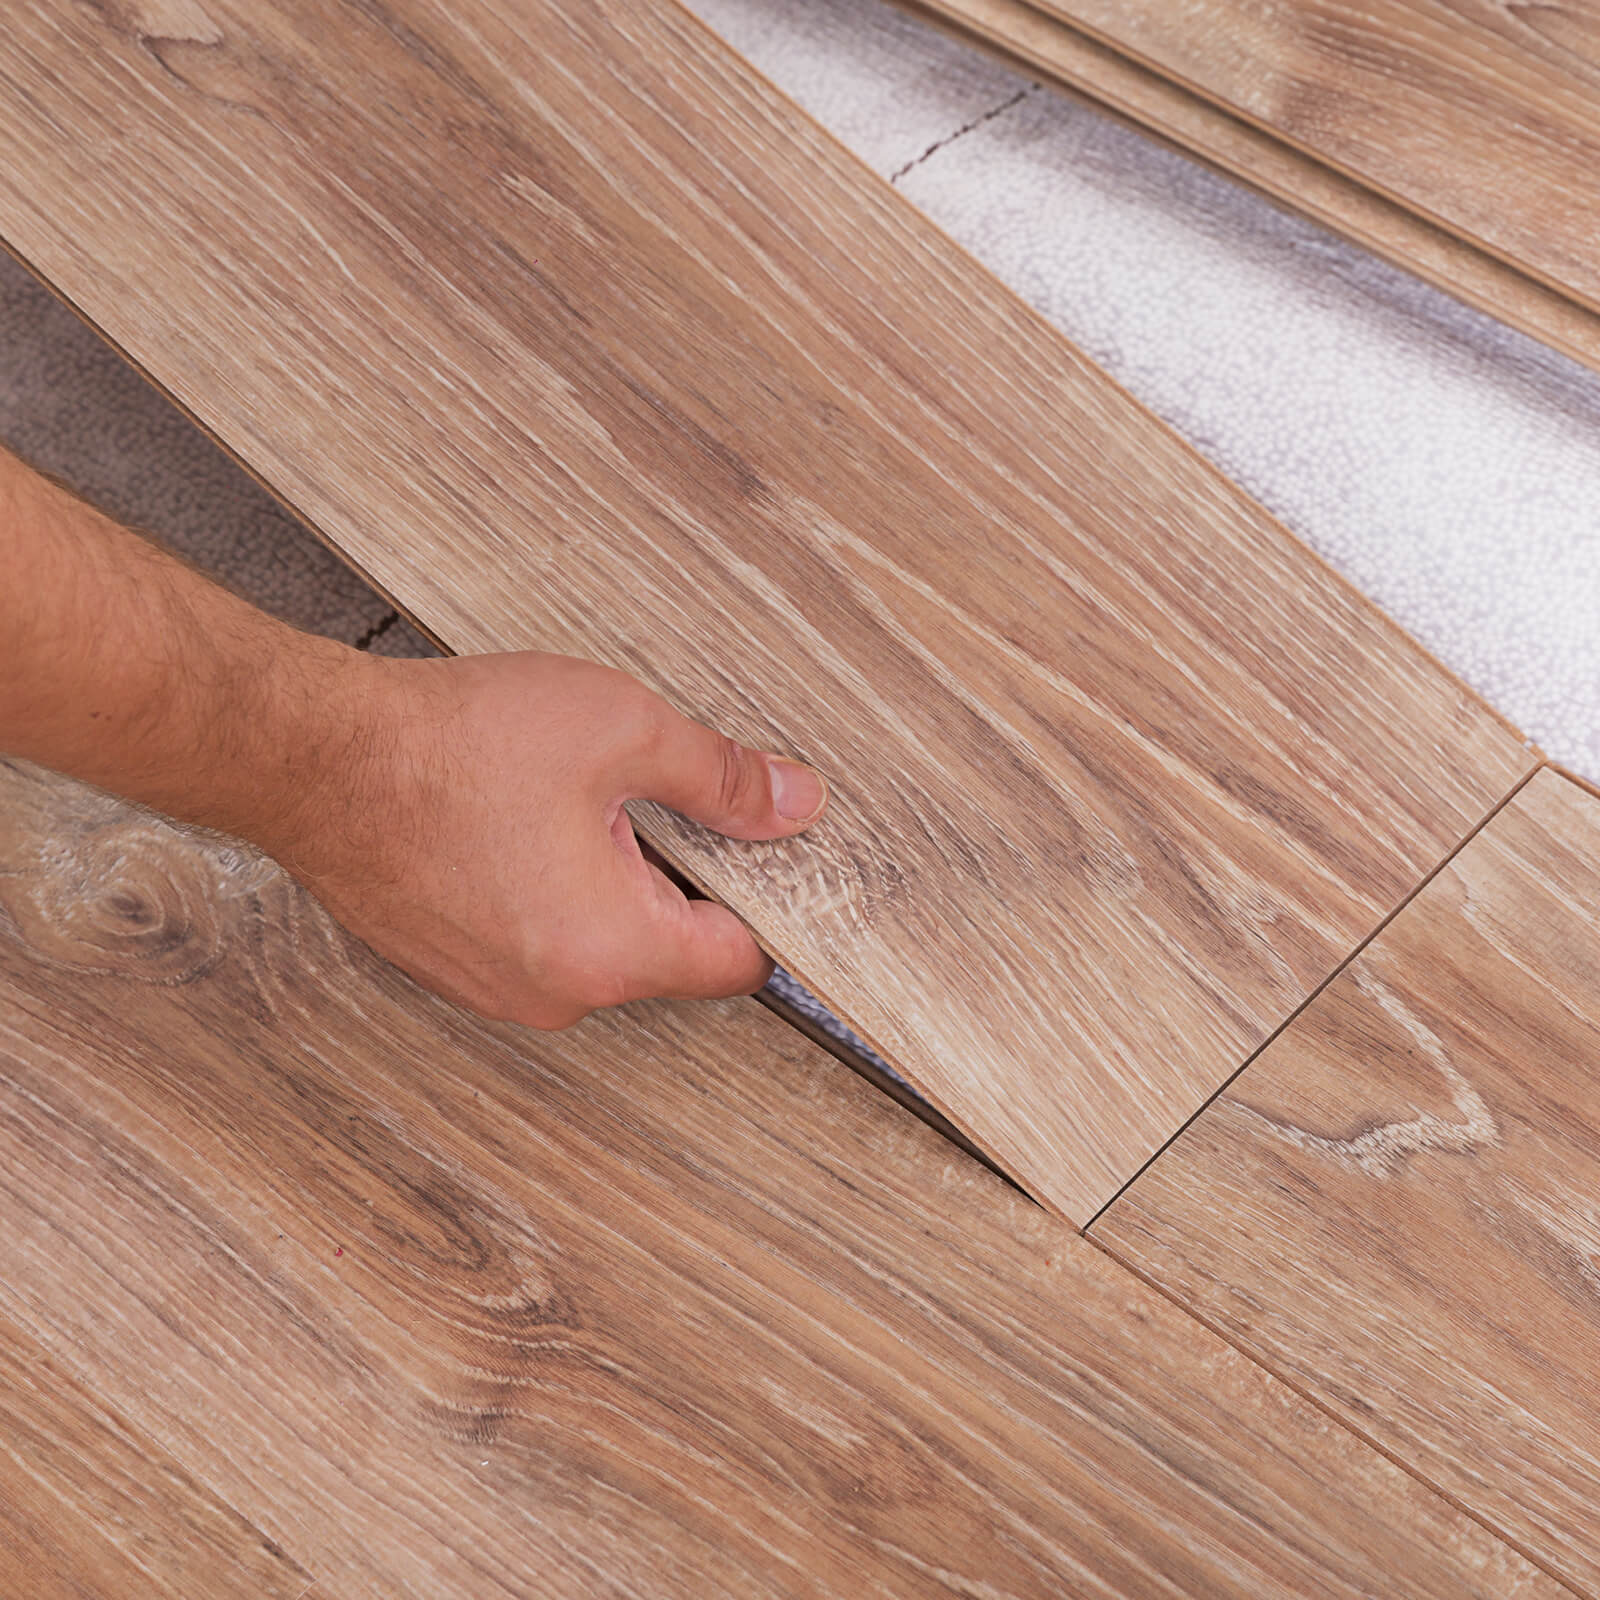 Installing laminate flooring Markham, ON | Markville Carpet & Flooring